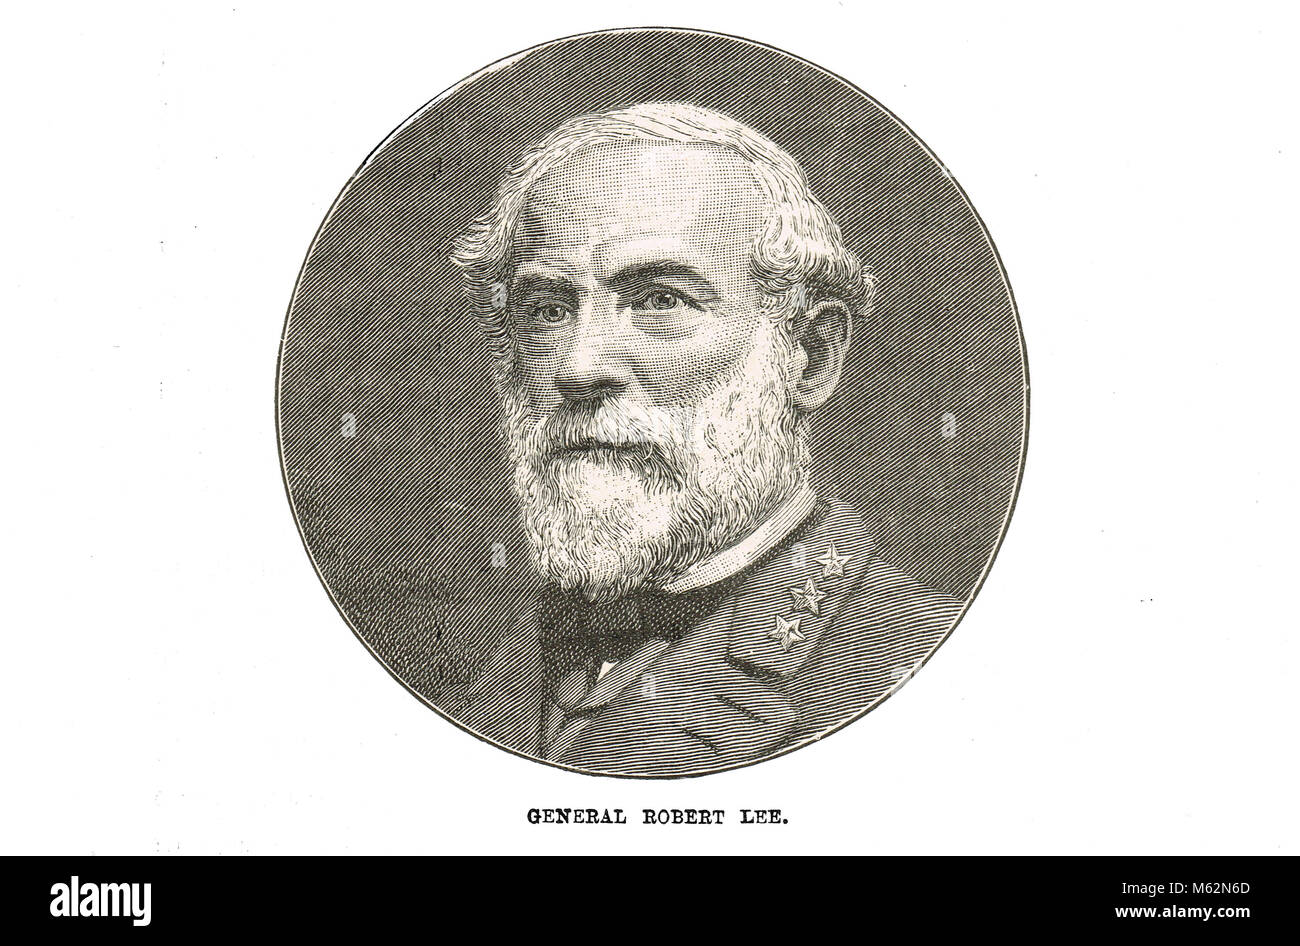 General Robert E. Lee, commander of the Confederate States Army,  American Civil War - Stock Image